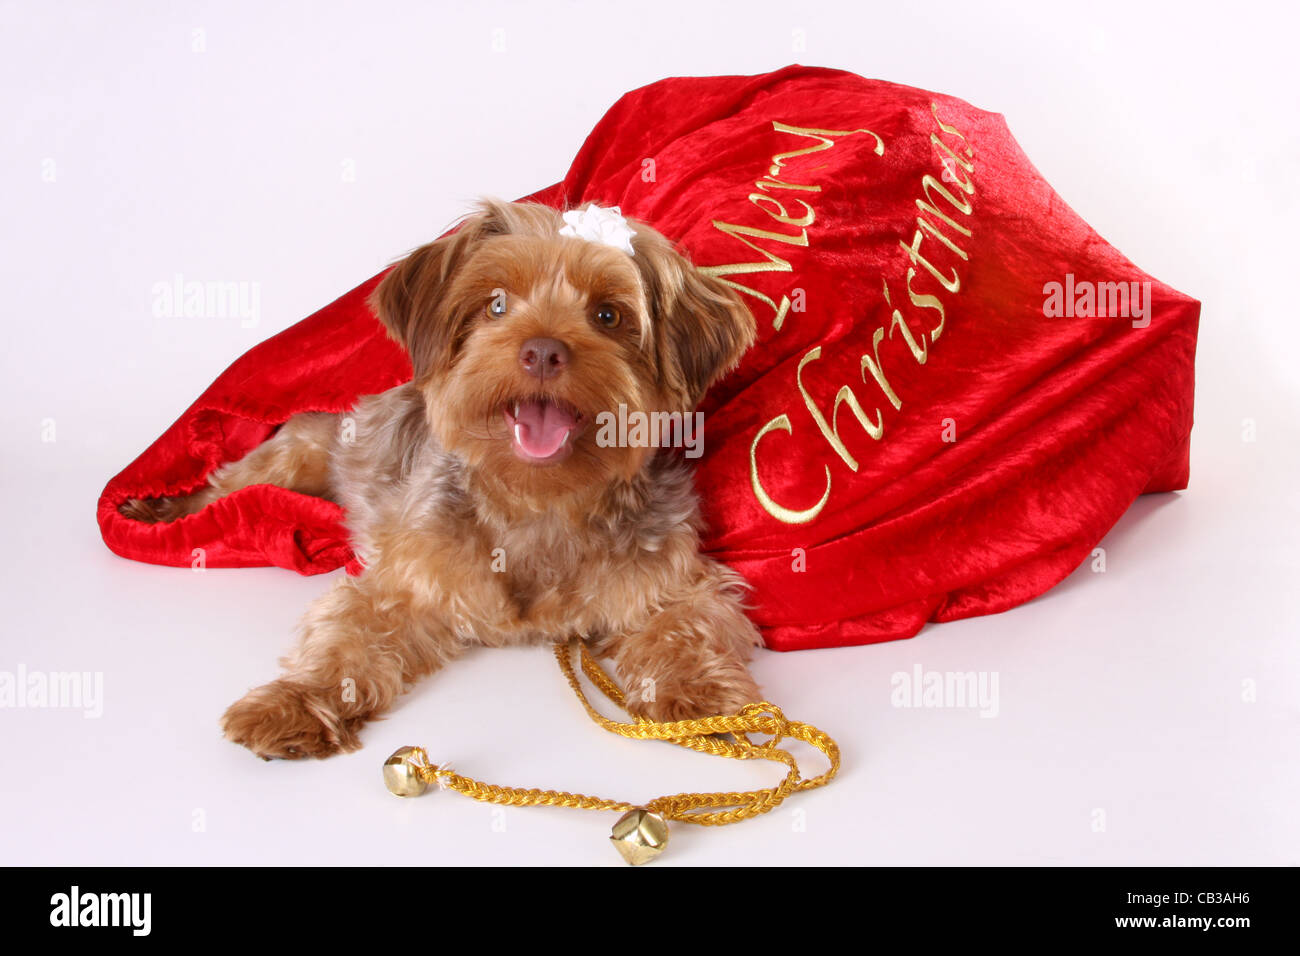 Yorkshire Terrier Poodle Puppy For A Christmas Present Stock Photo